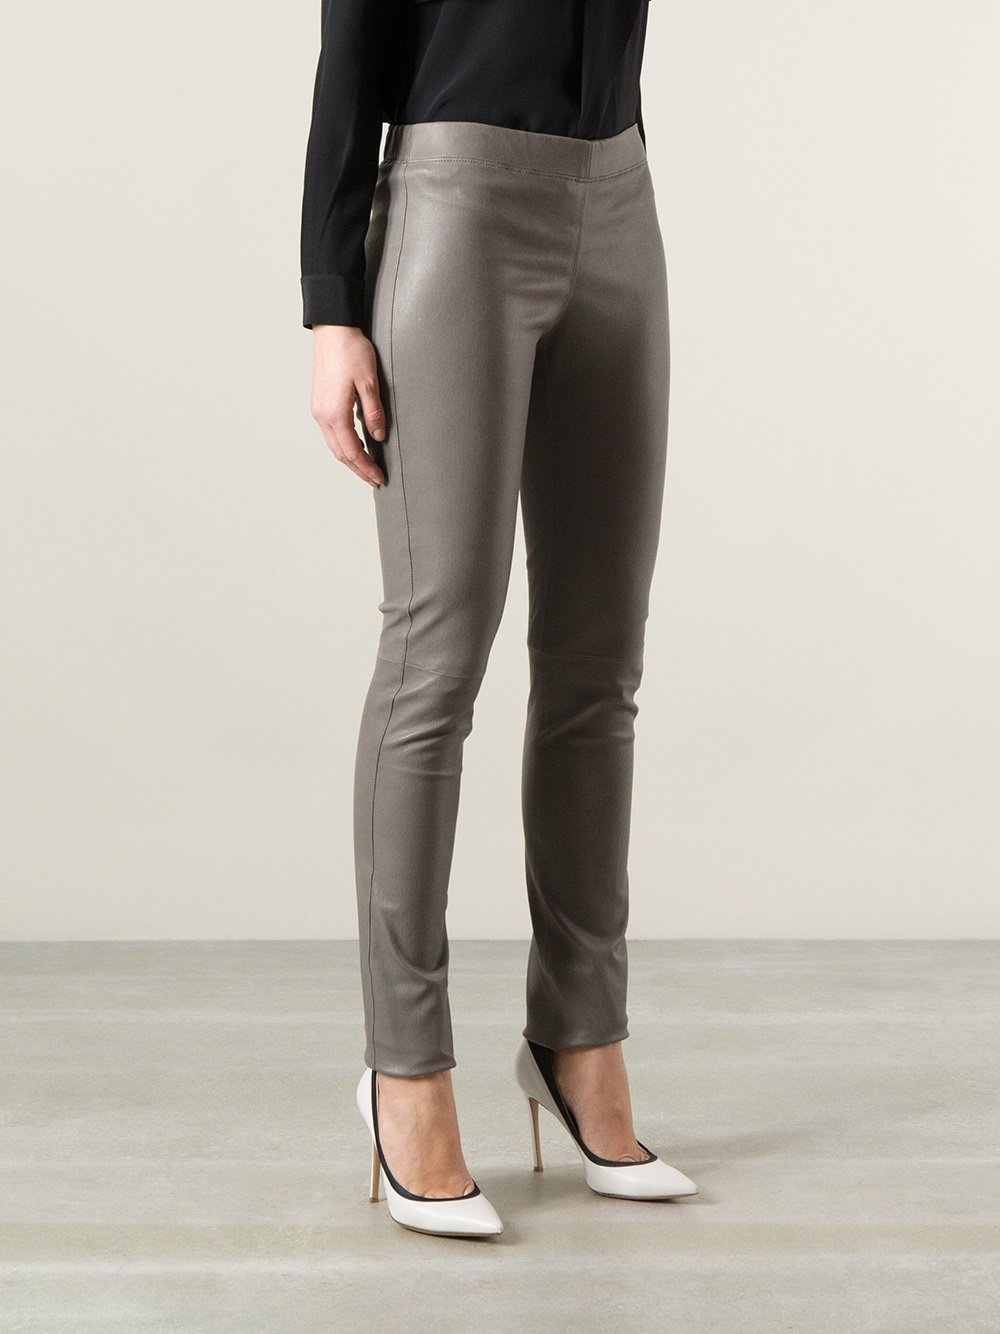 7d3fefde731489 Gallery. Previously sold at: Farfetch · Women's Leather Leggings